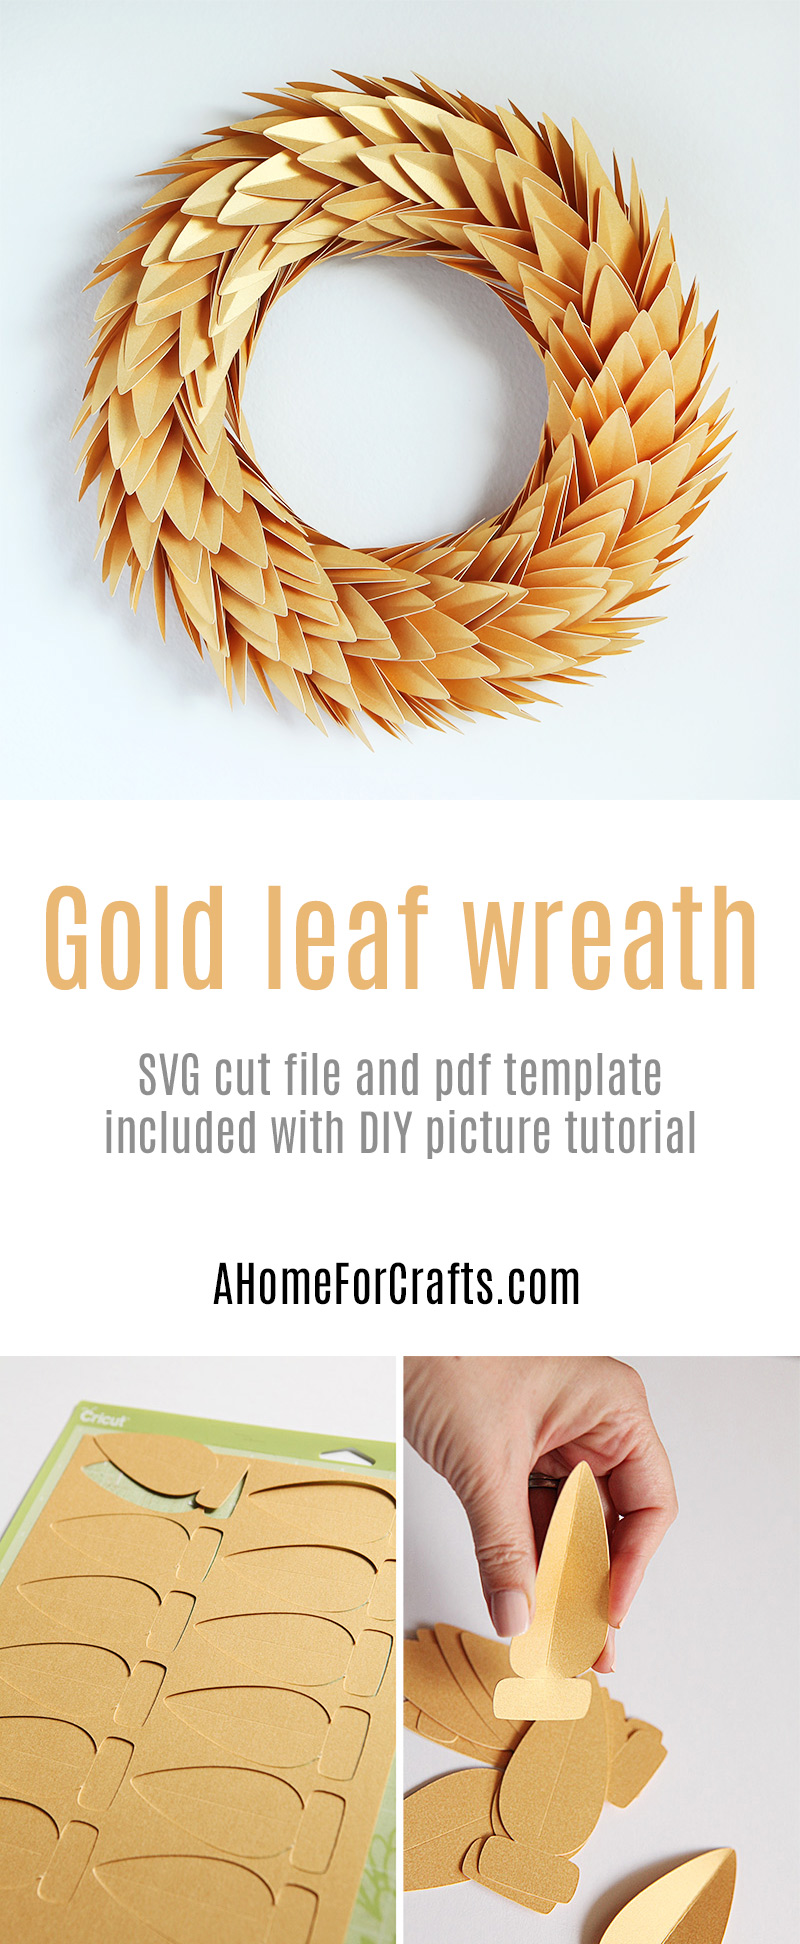 Gold leaf wreath with free download